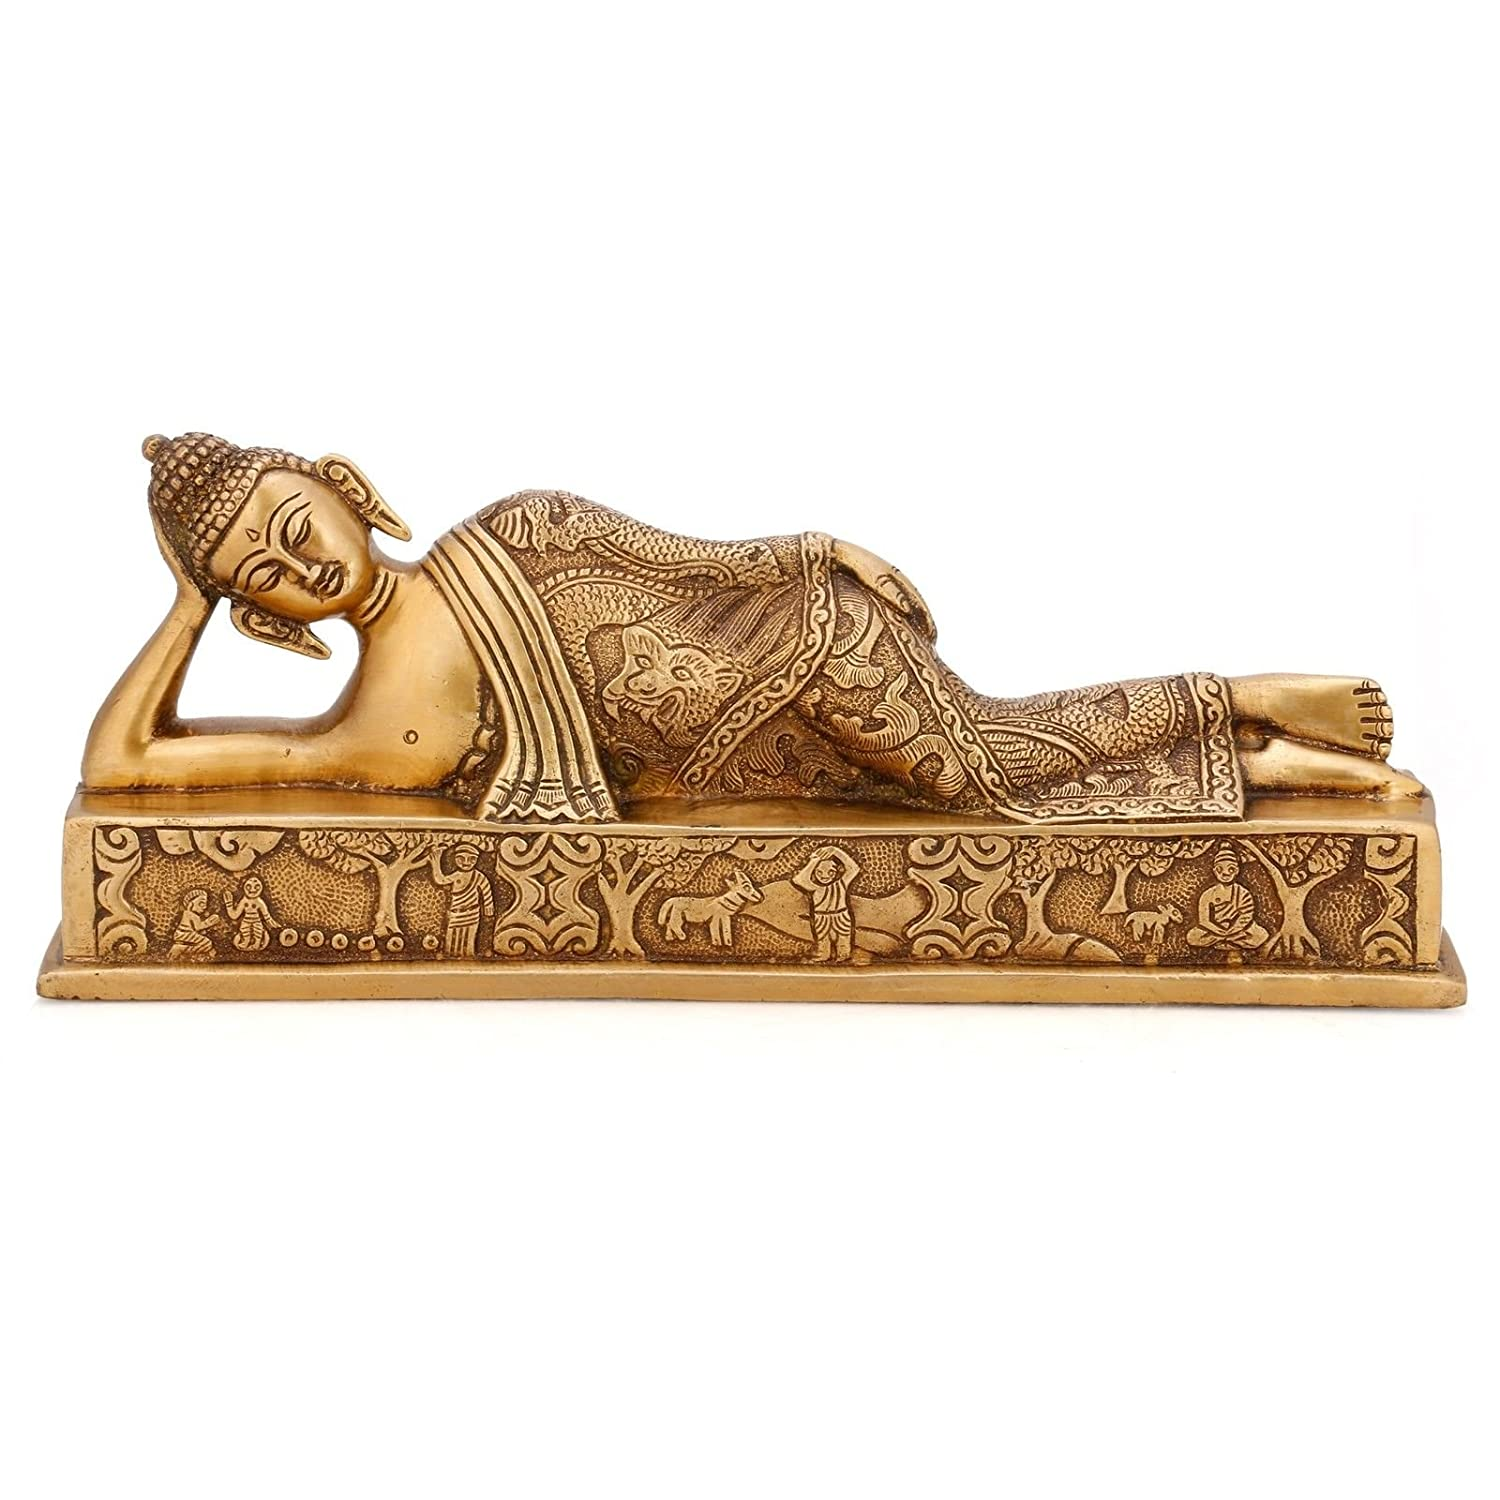 thai furniture dp statue statues reclining oriental decor kitchen home com amazon buddha